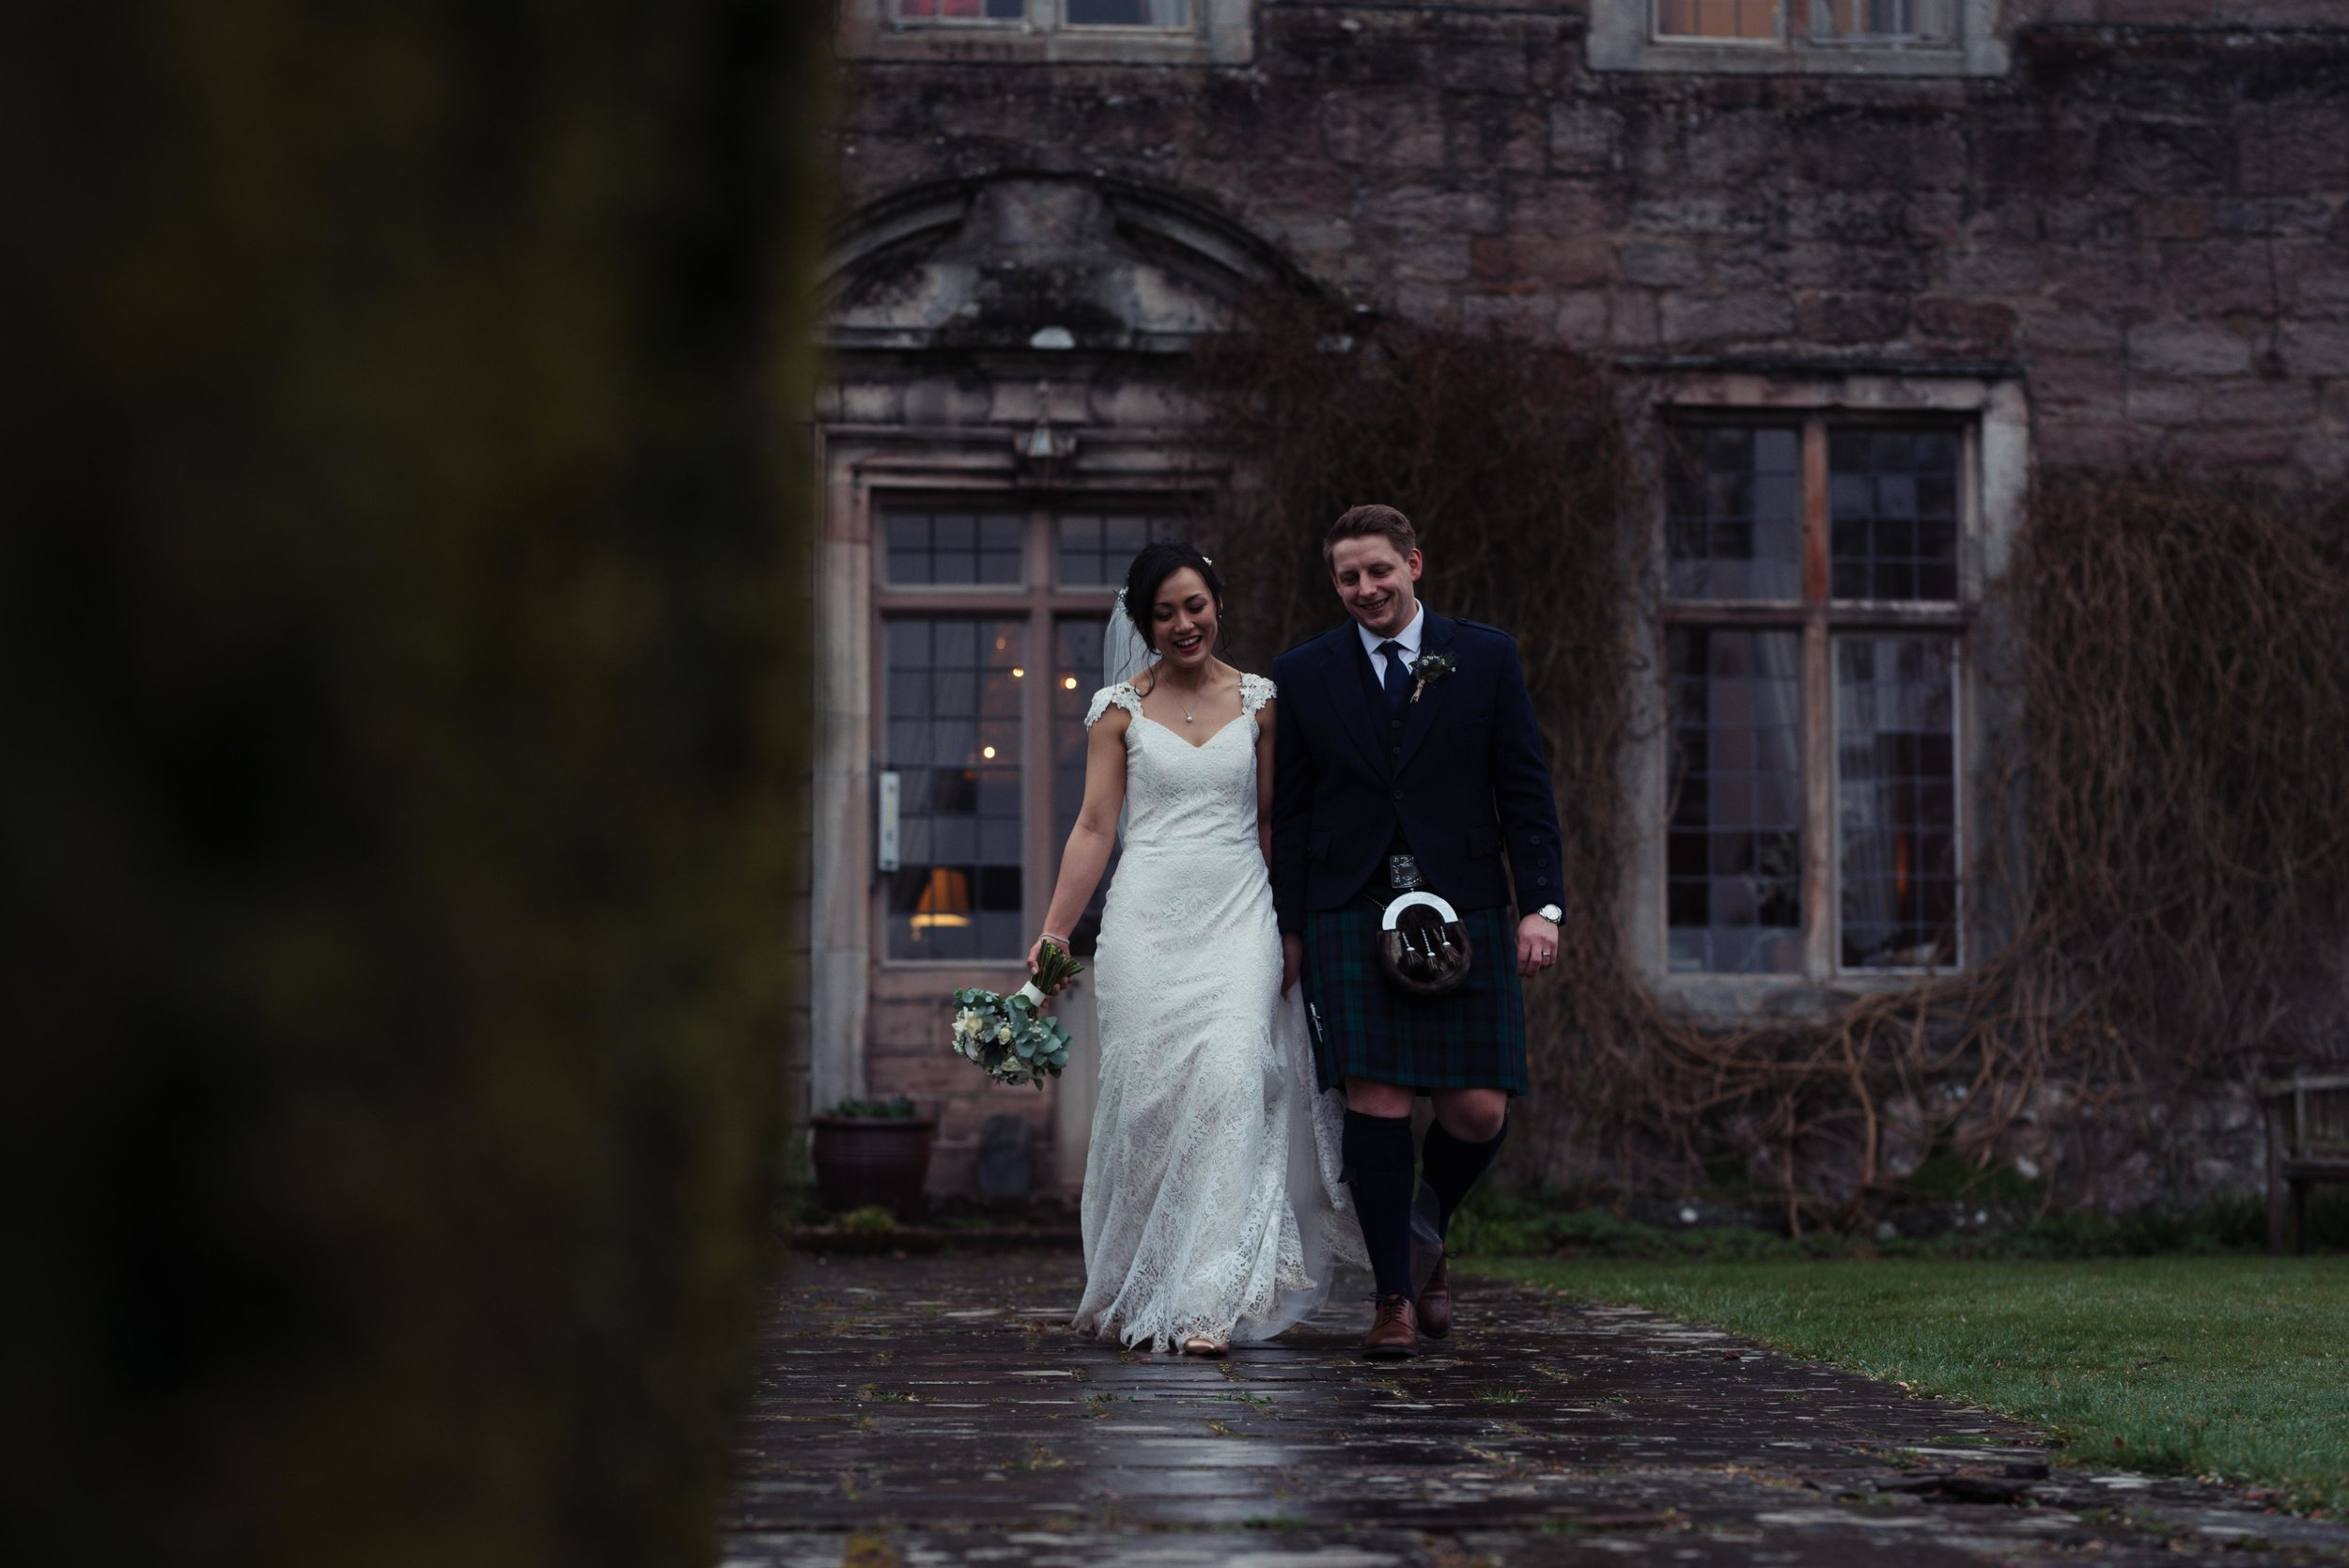 The bride and groom walking away from Askham Hall Cumbria towards the gardens